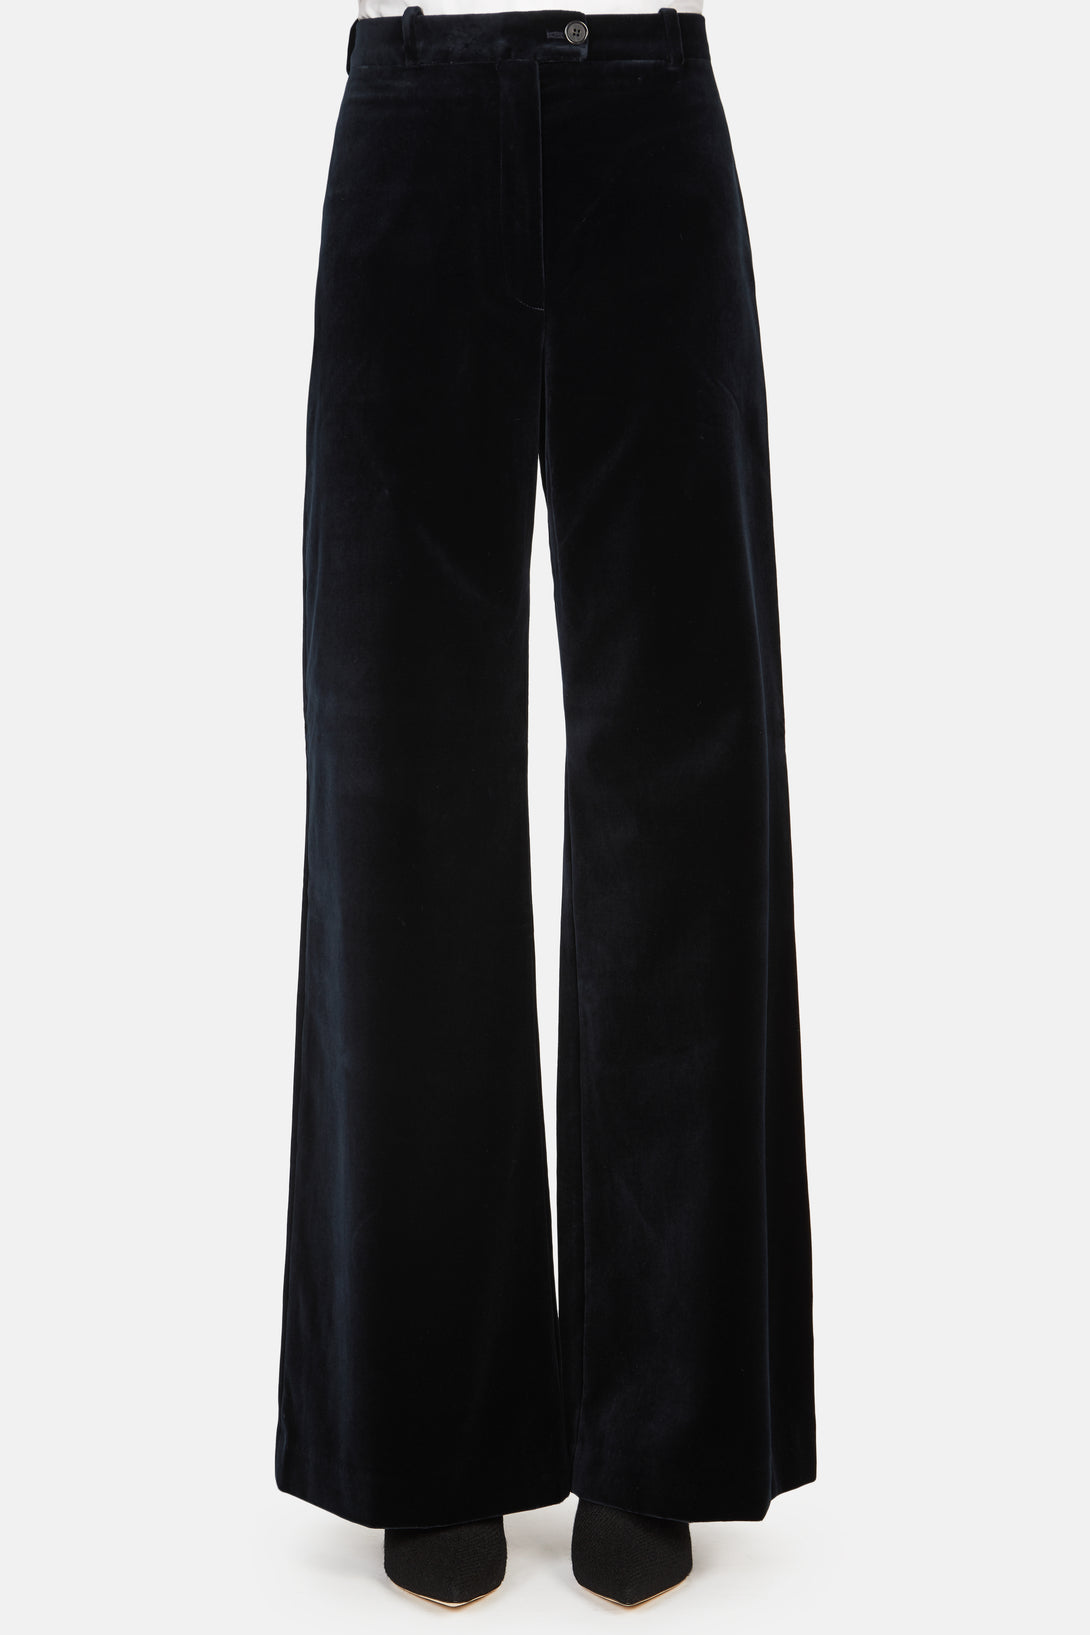 High Waisted Velvet Wide Leg Pant - Navy Blue